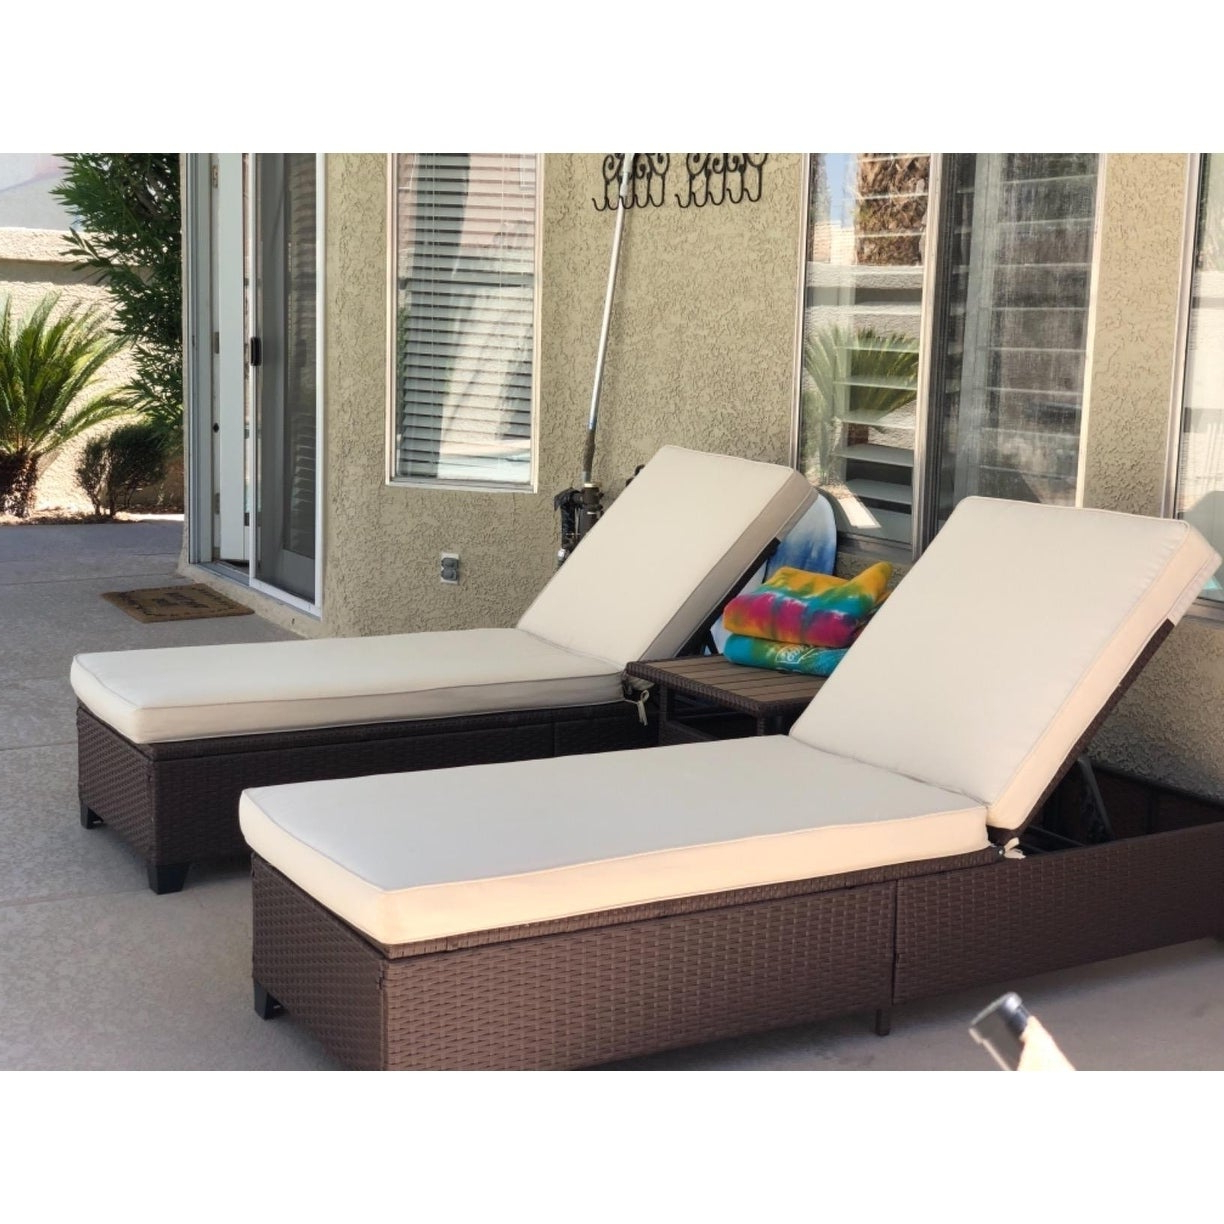 Famous Outdoor Adjustable Rattan Wicker Chaise Pool Chairs With Cushions In 3 Pc Outdoor Rattan Chaise Lounge Chair Patio Pe Wicker Rattan Furniture  Adjustable Garden Pool Lounge Chairs And Table (View 20 of 25)